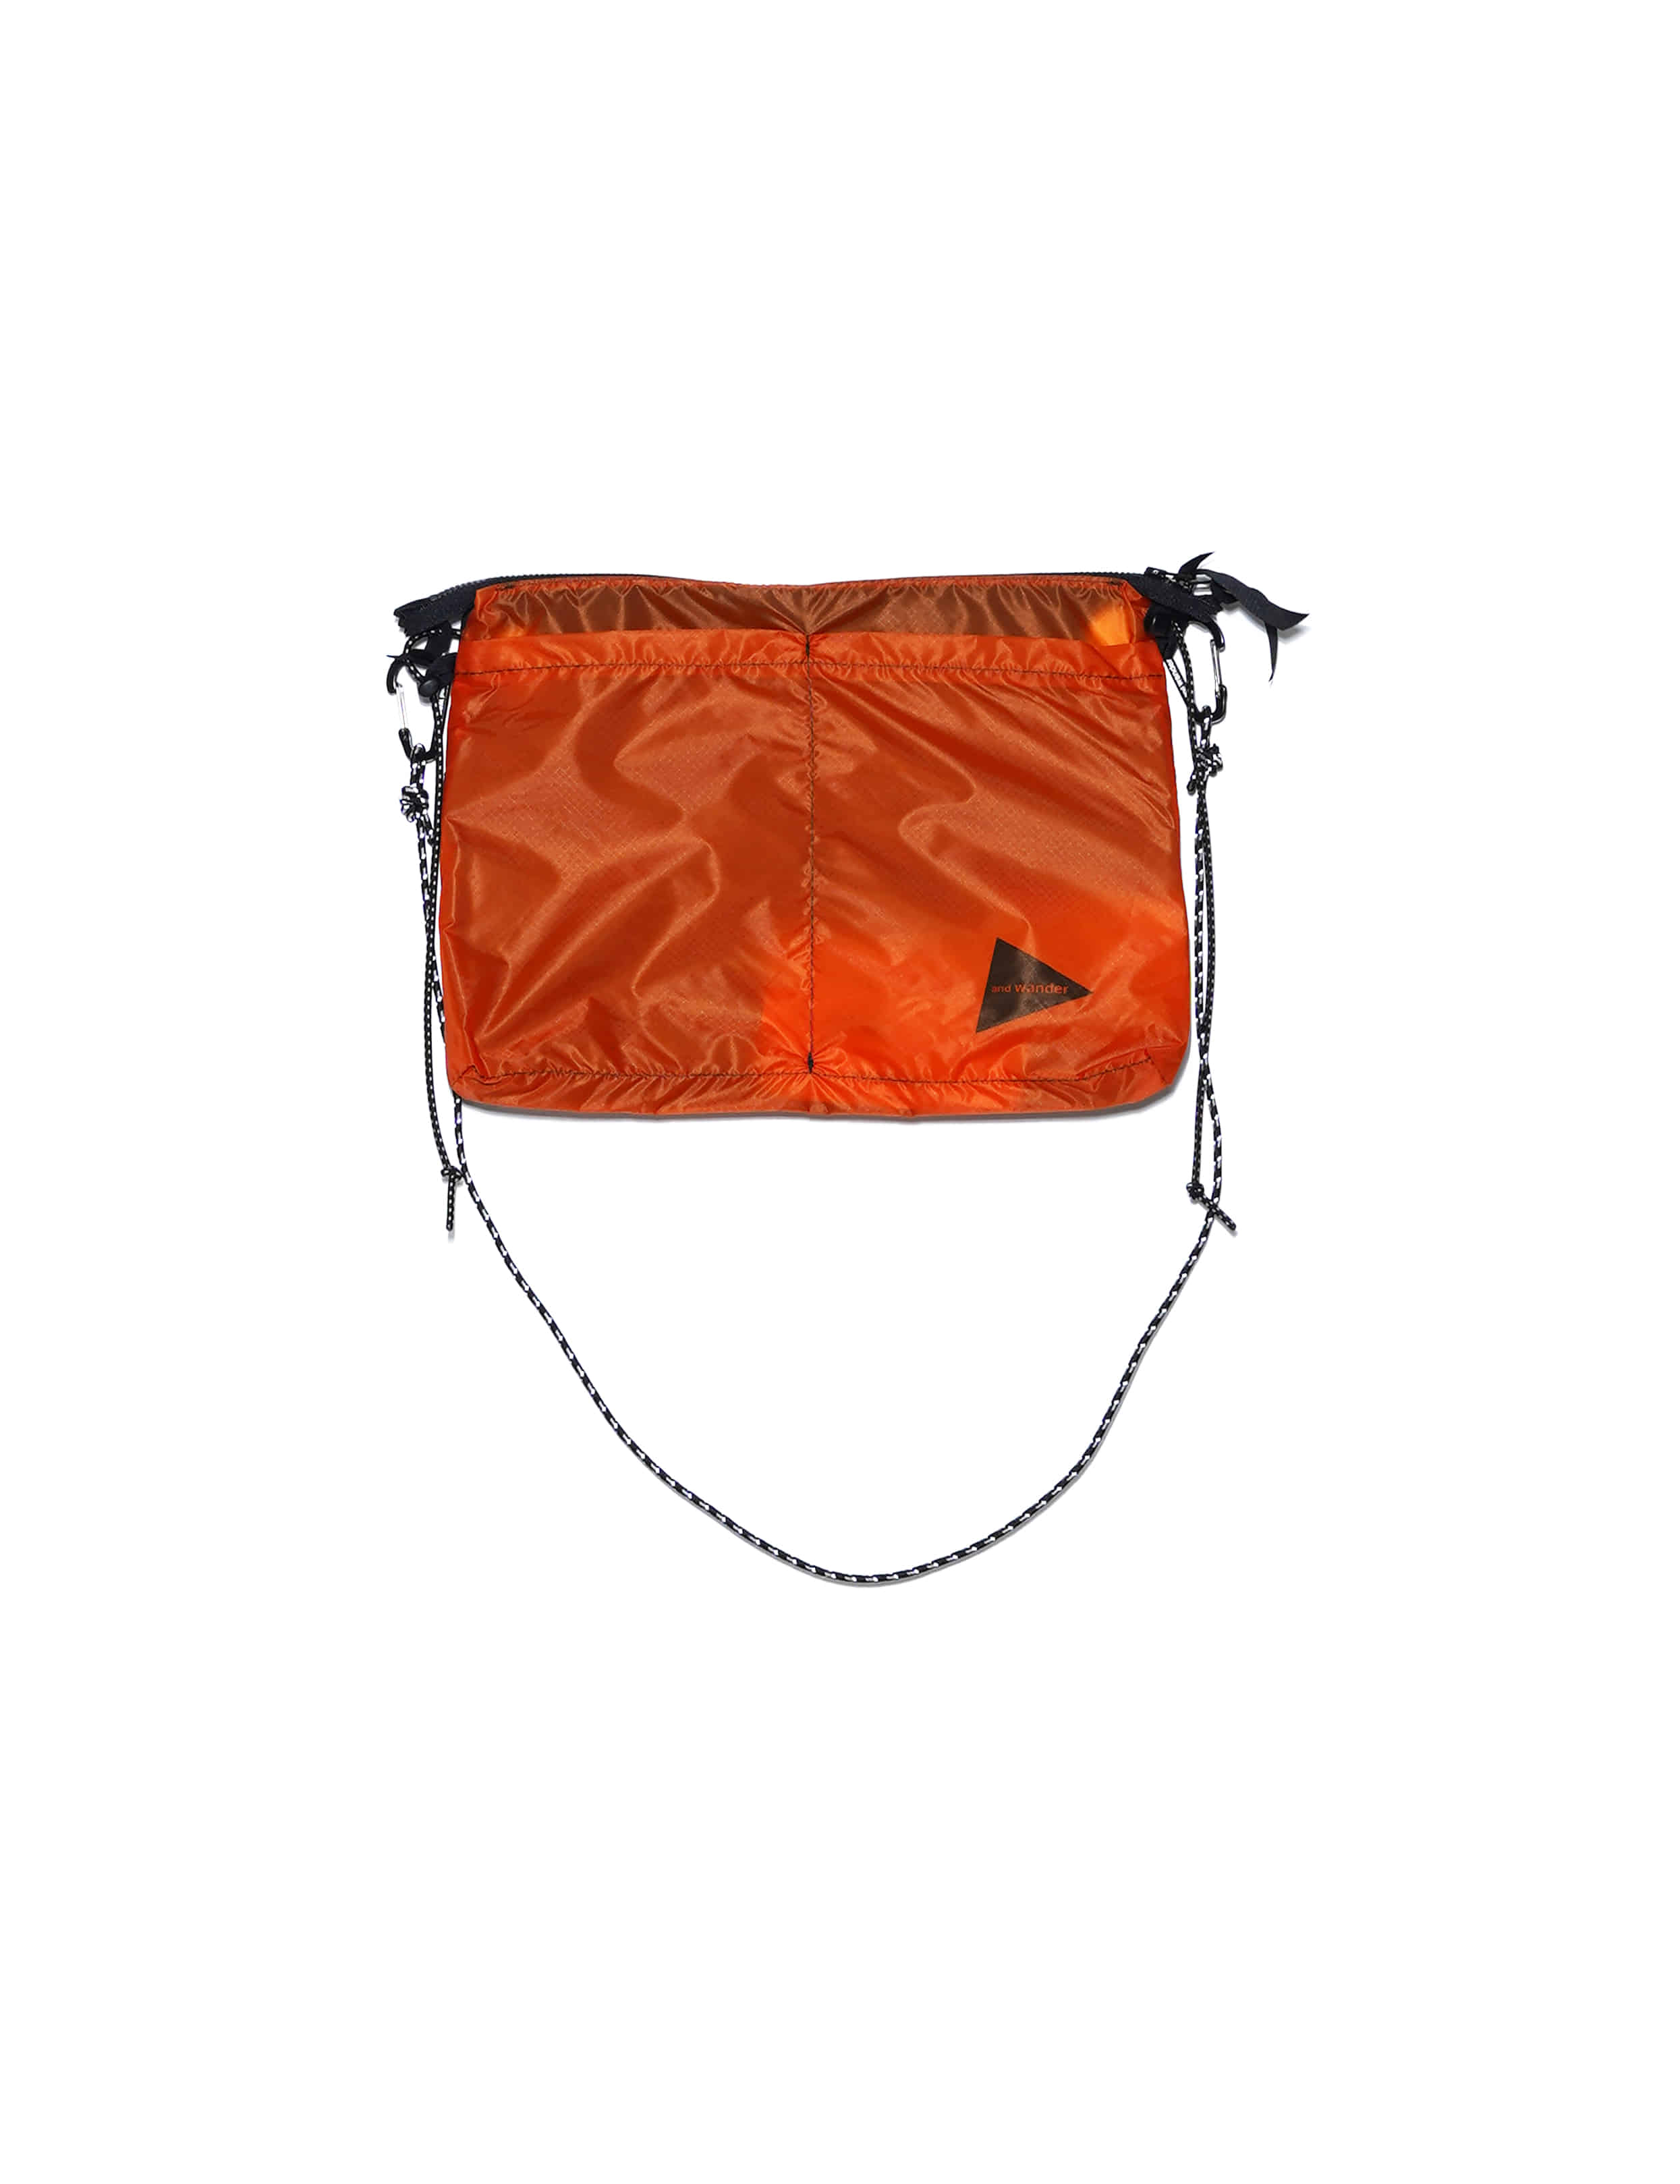 BAG / NYLON (WOVEN) (ORANGE)